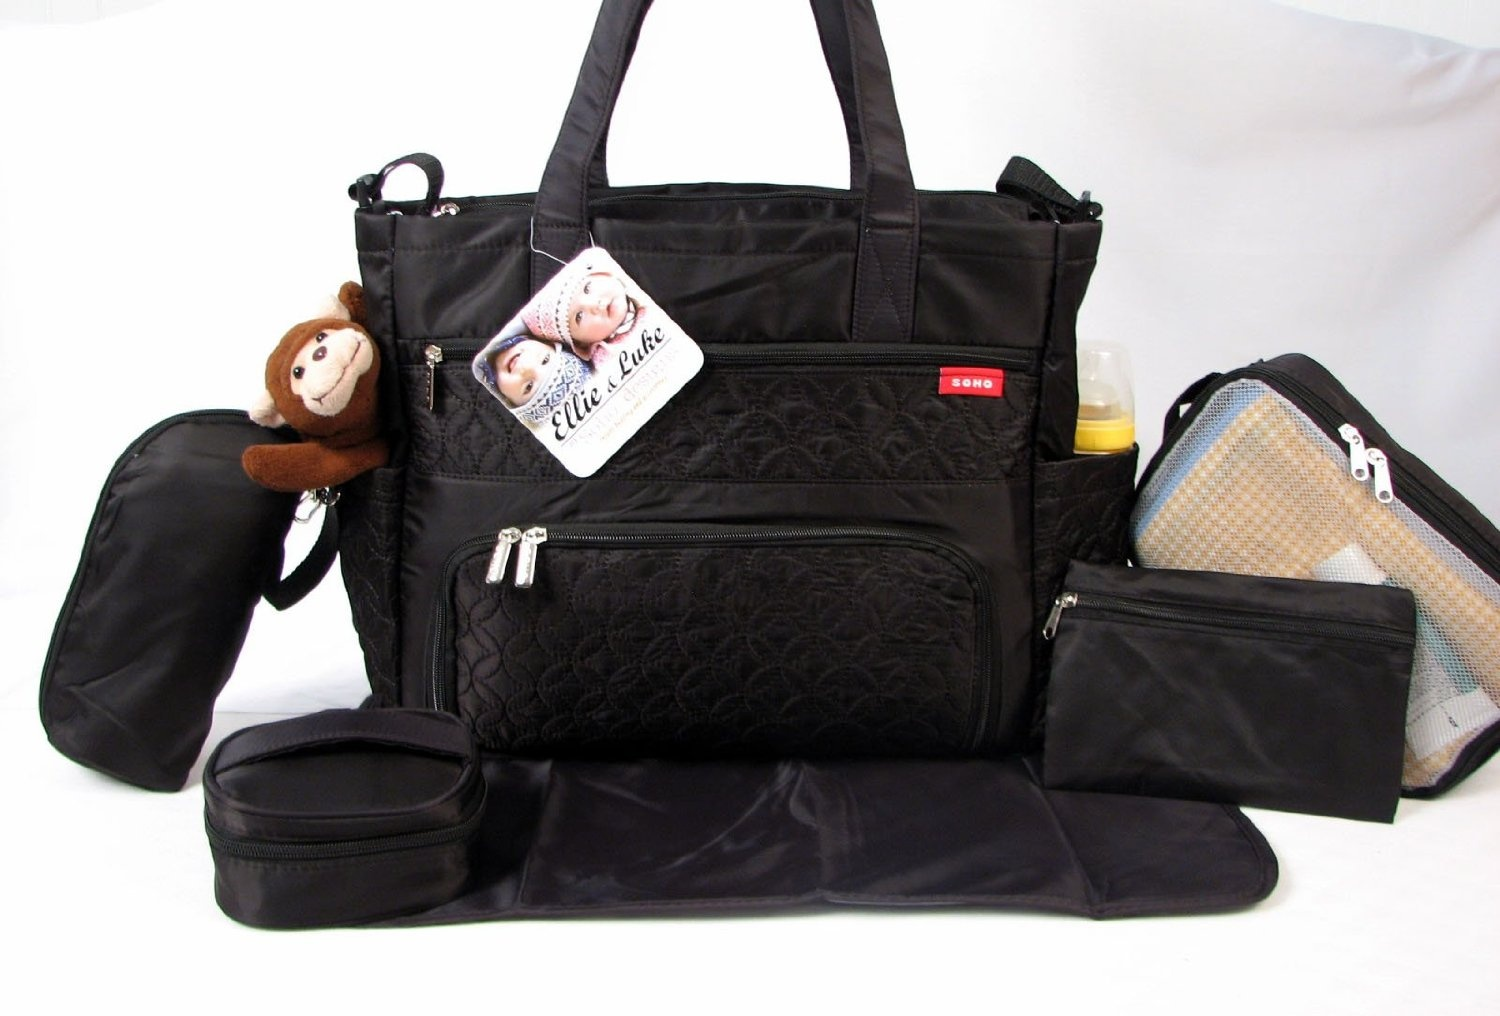 baaa7c31e94b SoHo Collection, Williamsburg 6 pieces Nappy Tote Bag set * Limited Tme  Offer! *